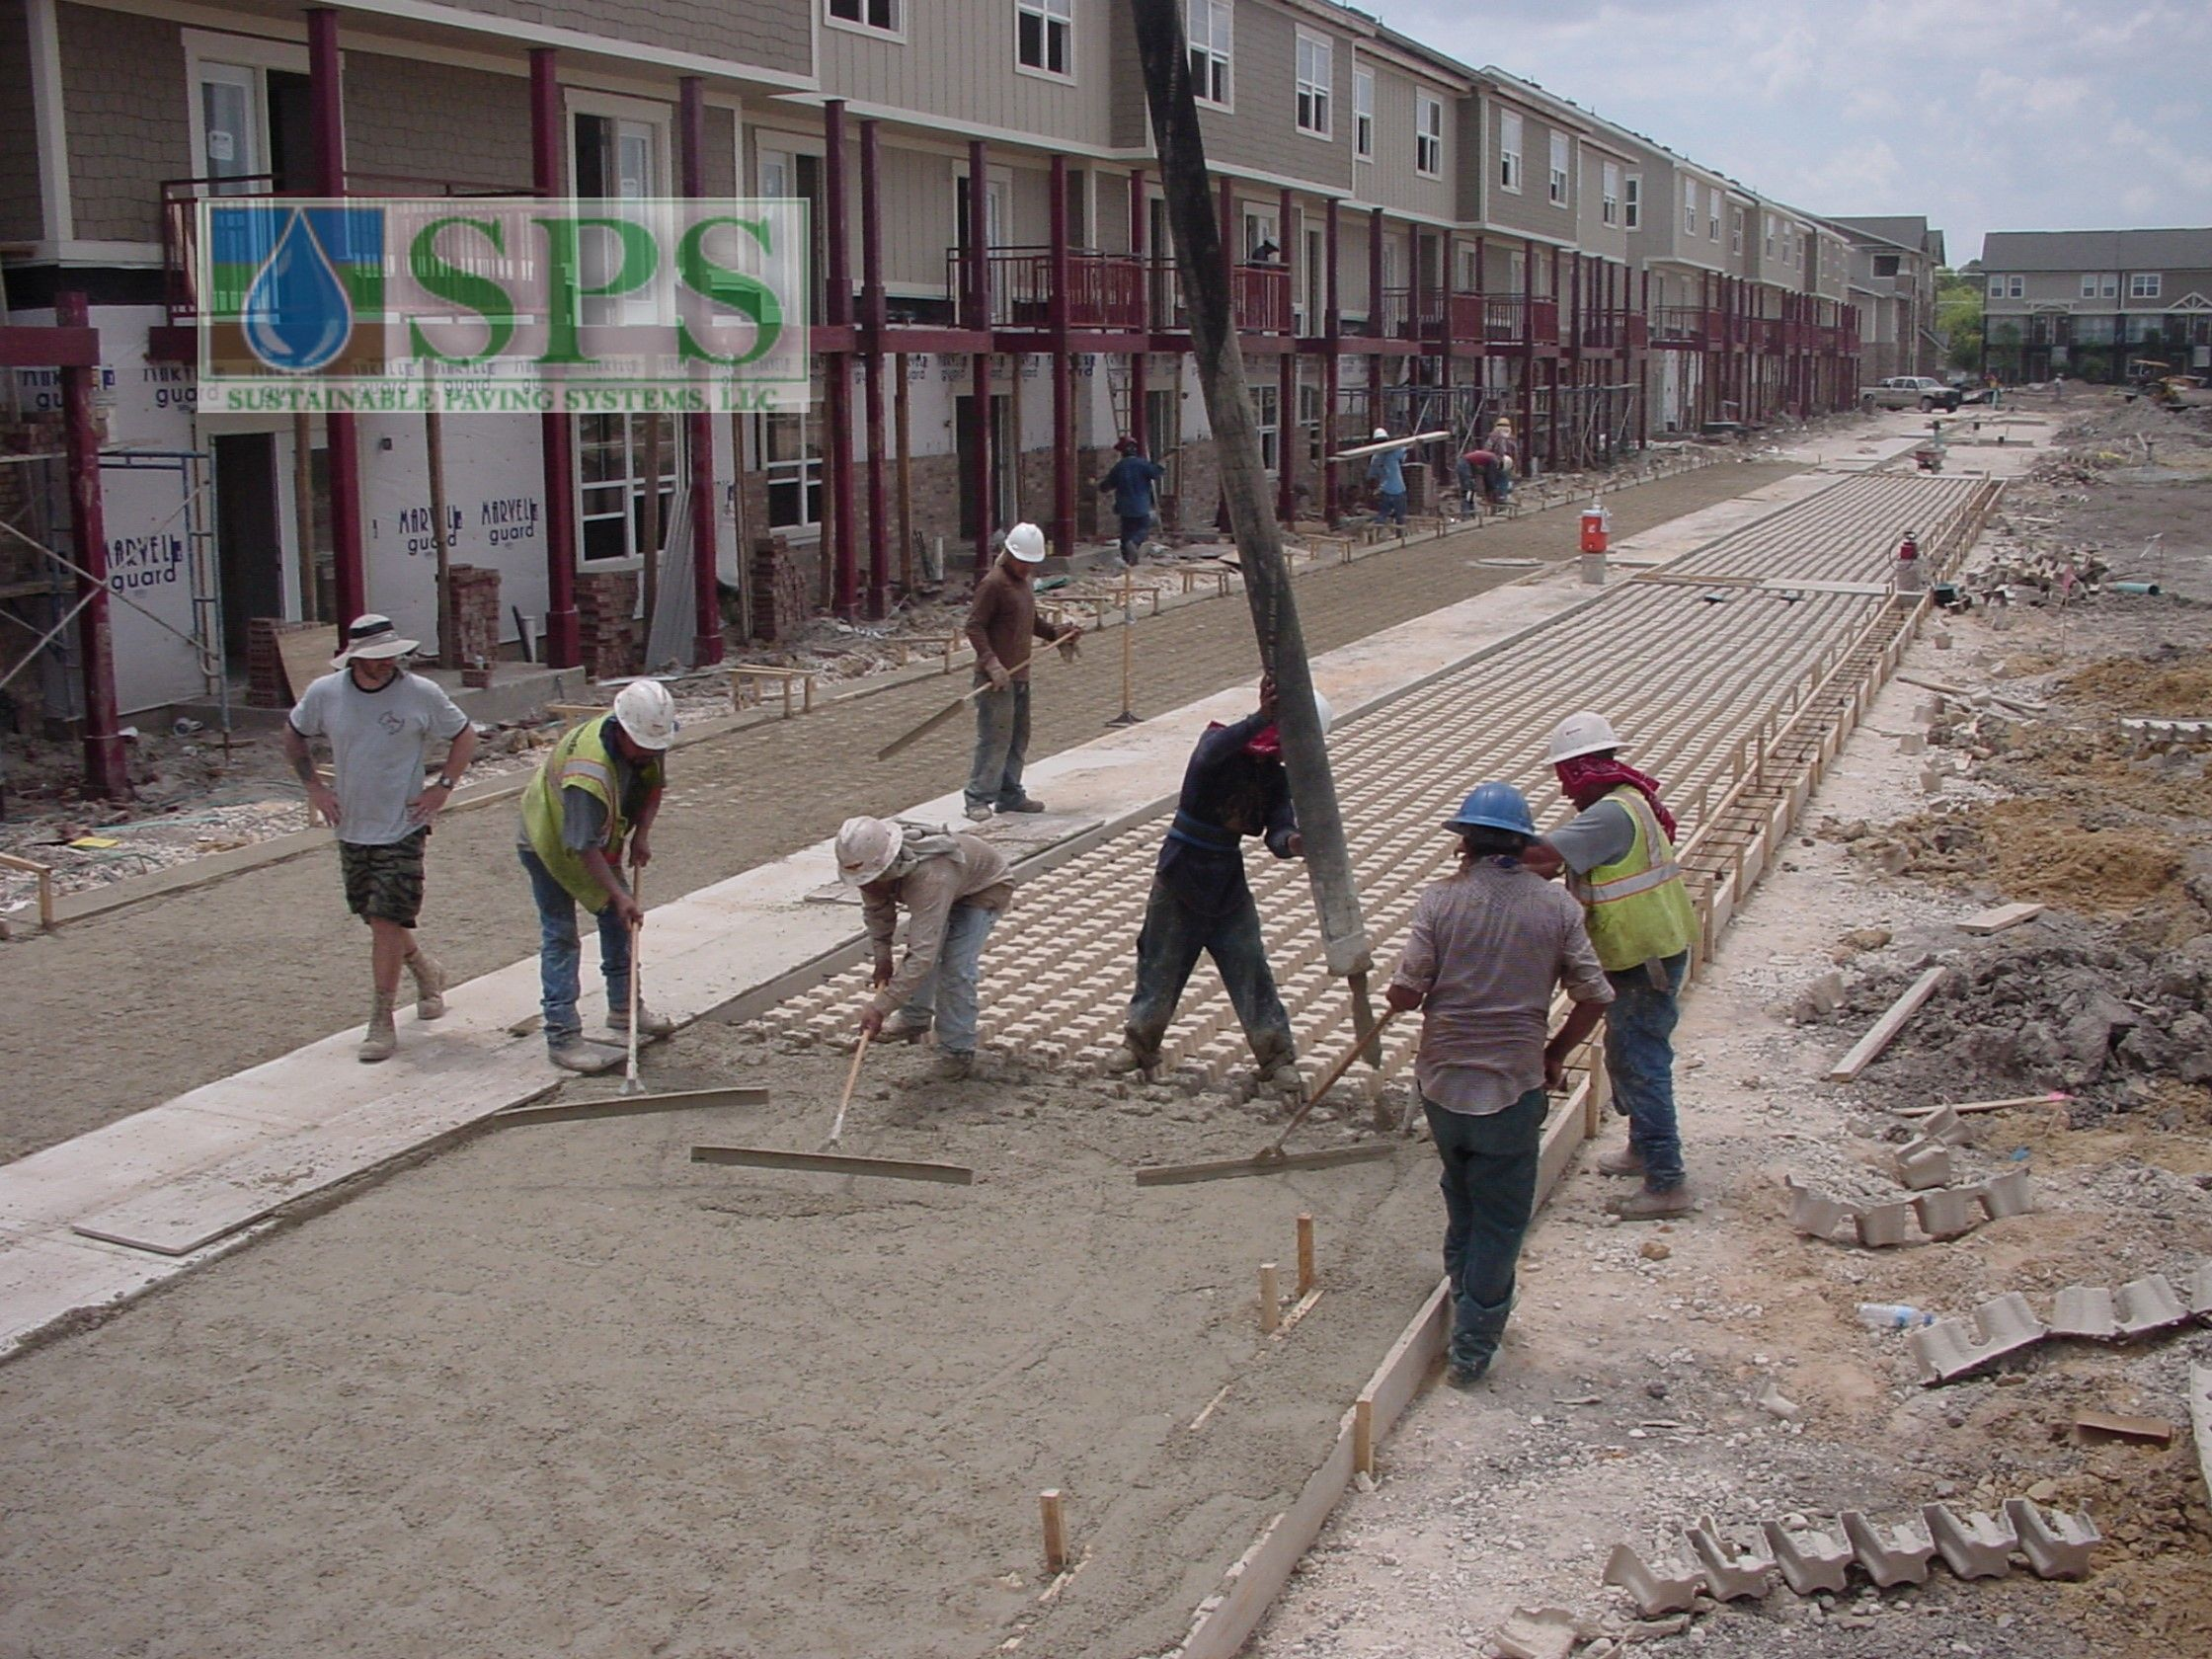 Grasscrete Concealed System At Woodlands At College Station View Of Firelane Concrete Pour_6